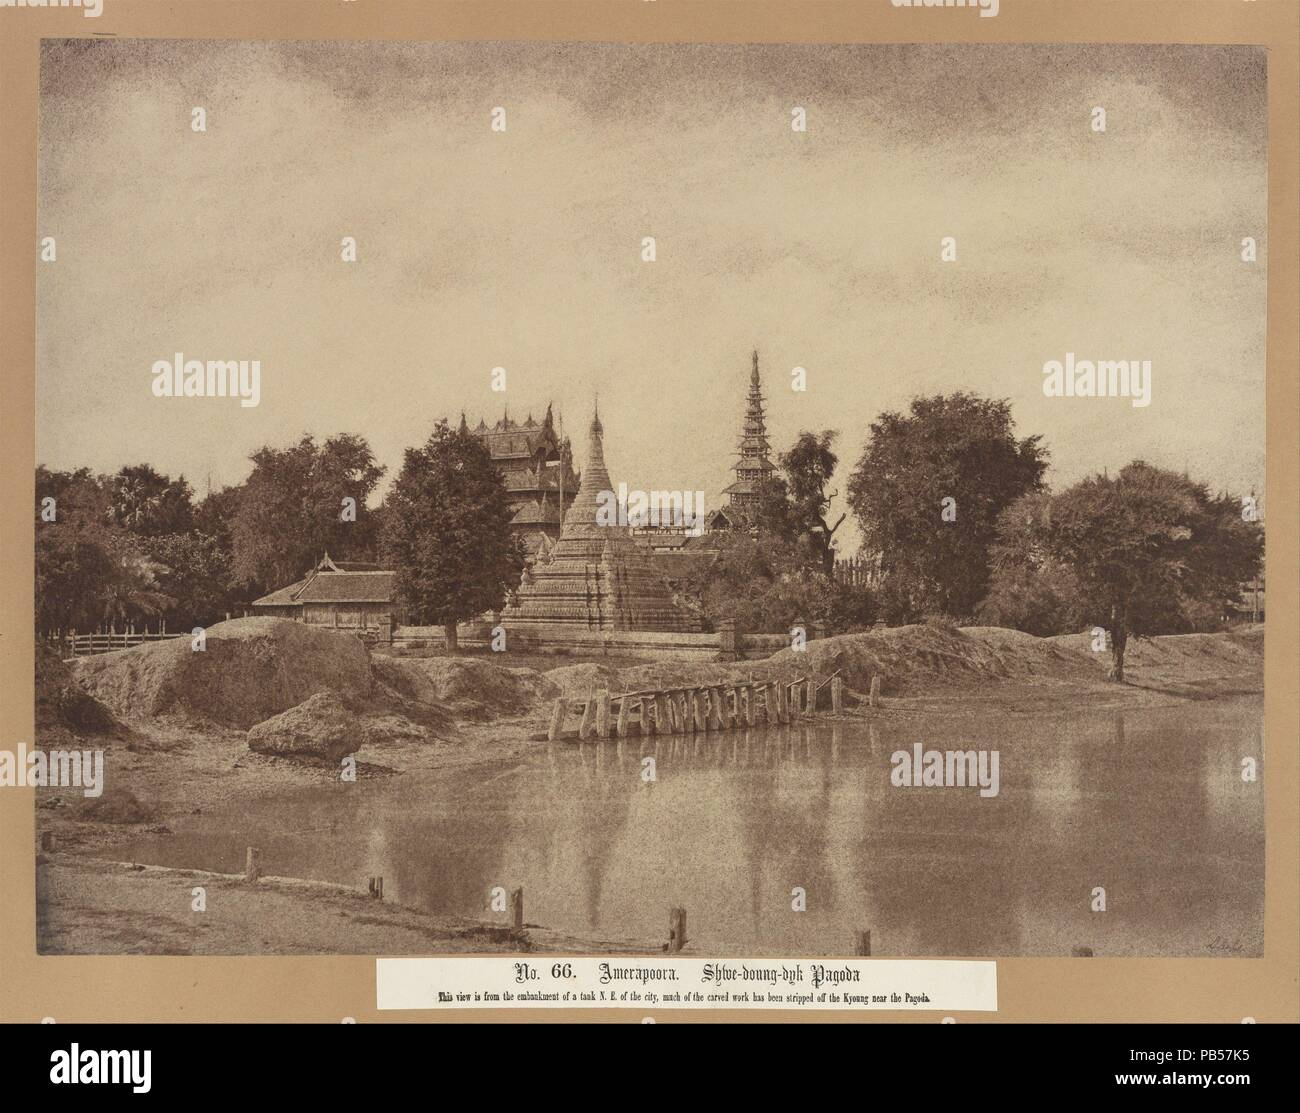 Amerapoora: Shwe-doung-dyk Pagoda. Artist: Linnaeus Tripe (British, Devonport (Plymouth Dock) 1822-1902 Devonport). Dimensions: Image: 25.8 x 34.6 cm (10 3/16 x 13 5/8 in.)  Mount: 45.5 x 58.3 cm (17 15/16 x 22 15/16 in.)  Mat: 20 × 24 in. (50.8 × 61 cm). Date: September 1-October 21, 1855.  Tripe retouched most of his negatives made in Burma and India. Here he painted the banks of clouds on the negative and even added horizontal strokes in the foreground to suggest ripples on the water, possibly to compensate for numerous pinholes in the negative that caused a peppering of black dots scattere Stock Photo